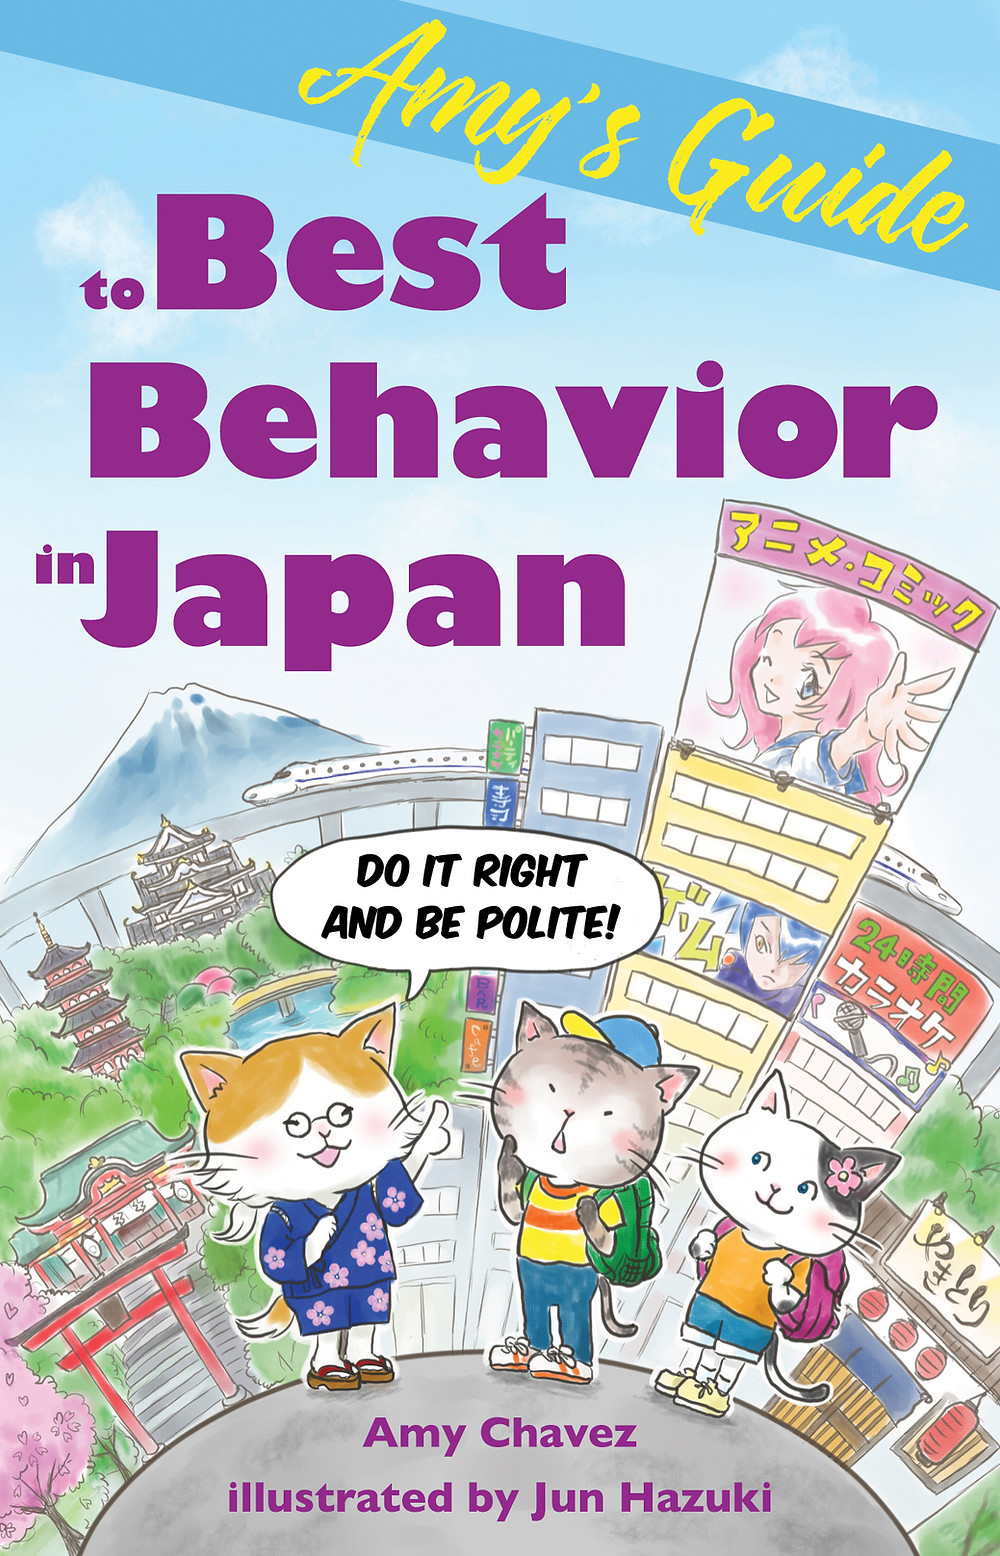 /images/blog/Amys-Guide-to-Best-Behavior-in-Japan.jpg